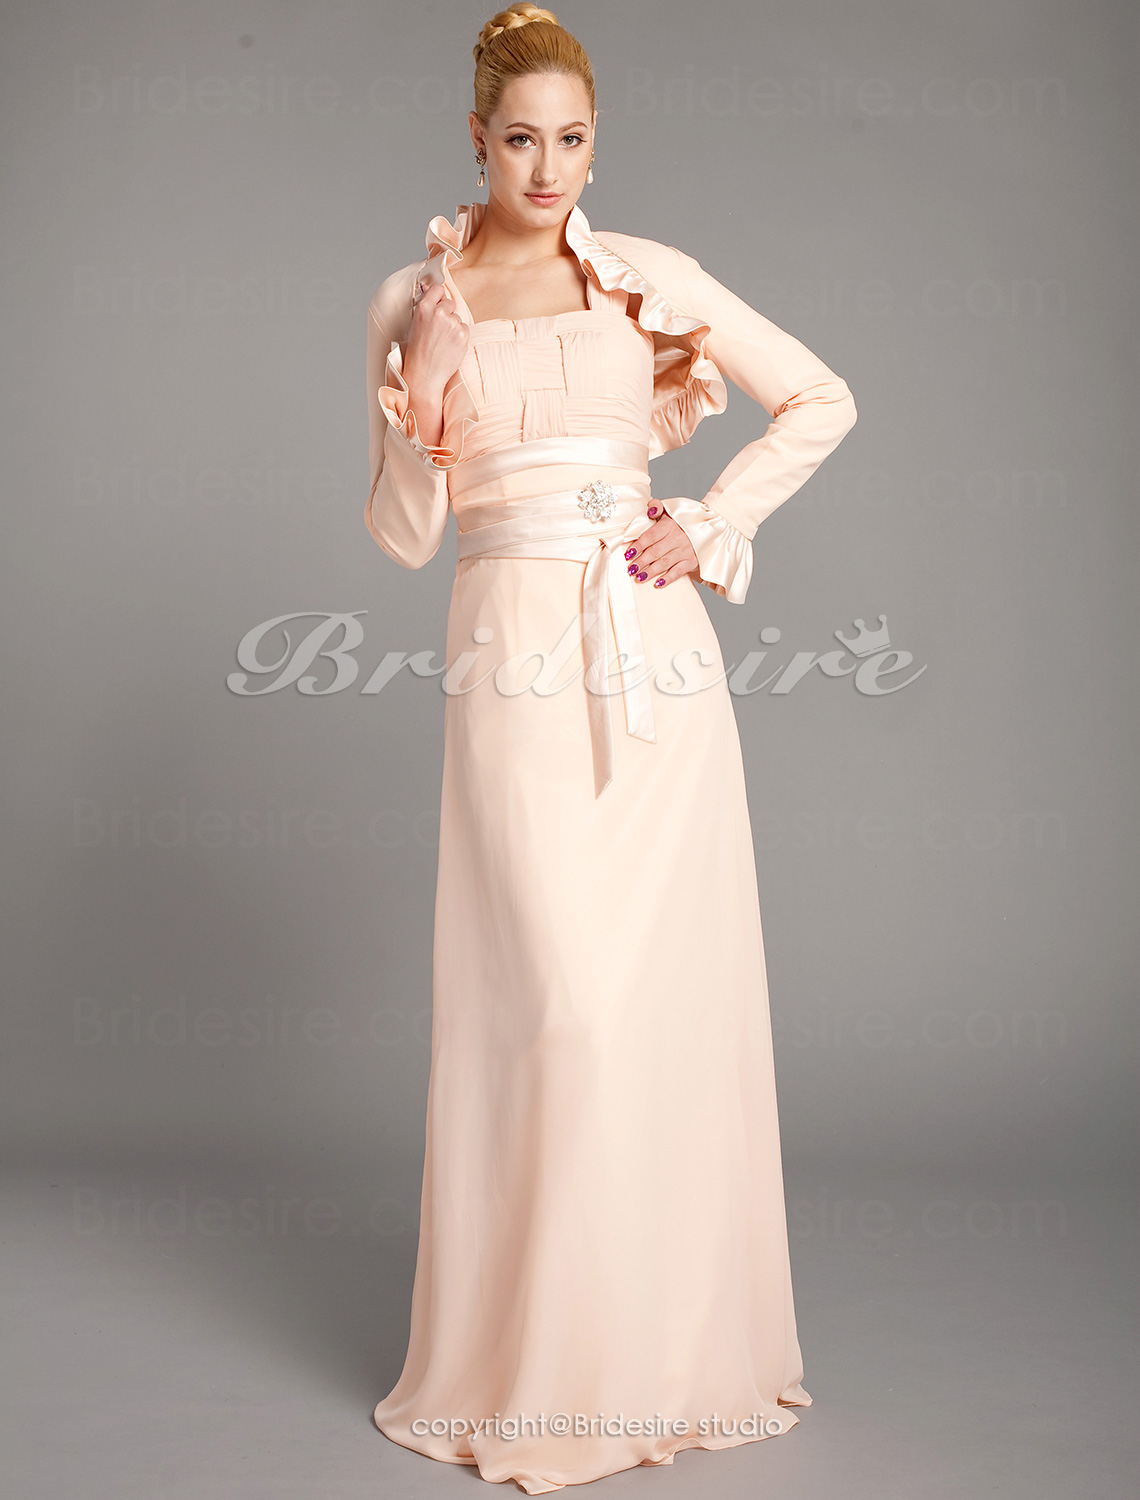 Sheath/Column Chiffon And Satin Floor-length Square Mother Of The Bride Dress With A Wrap